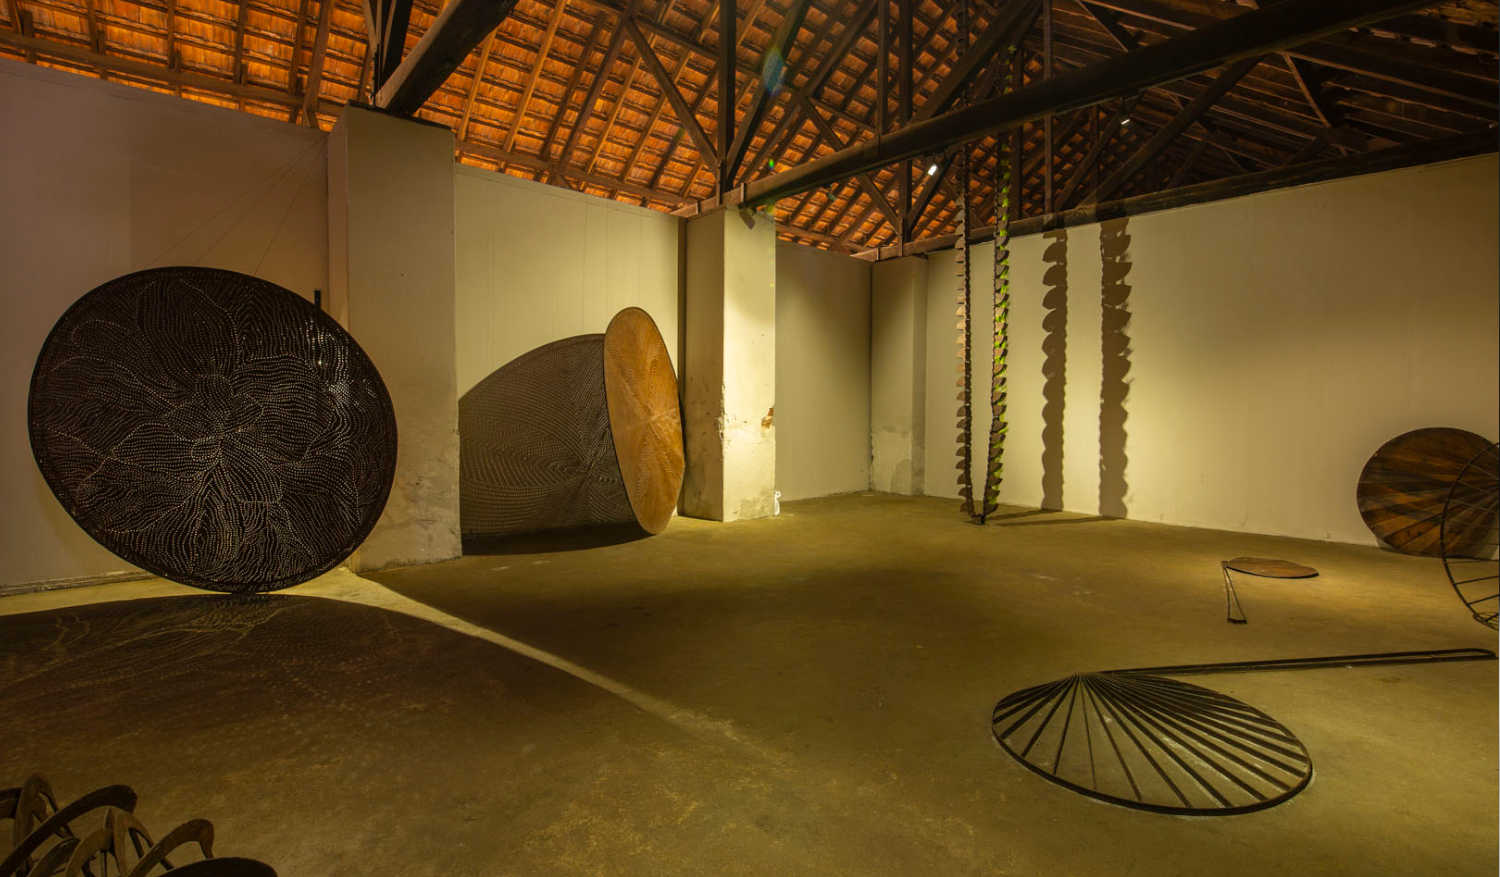 Sculptures by artist Shambhavi Singh on display at Aspinwall House, Fort Kochi